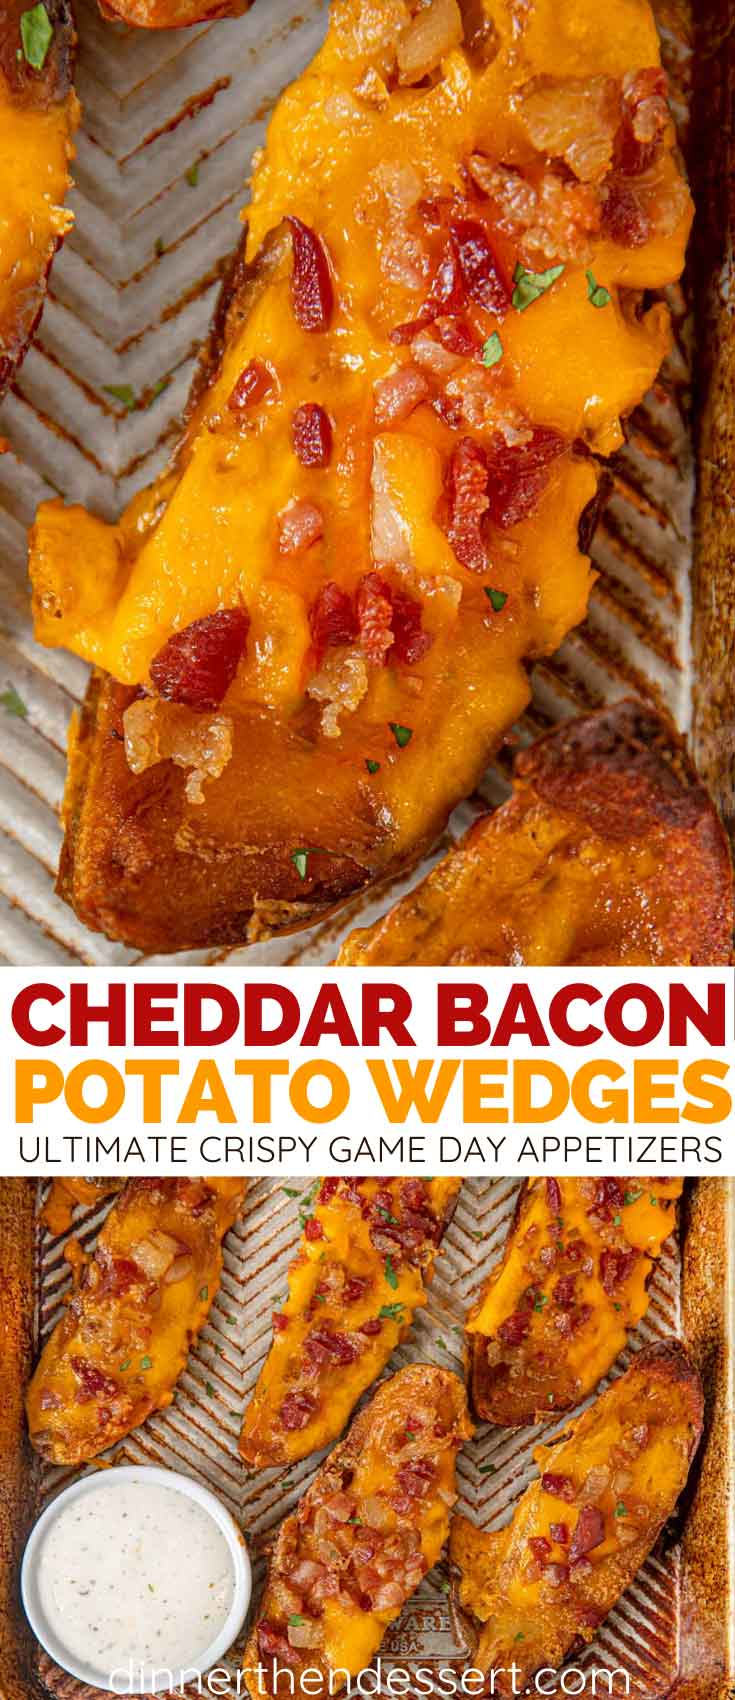 Cheddar Bacon Potato Wedges collage